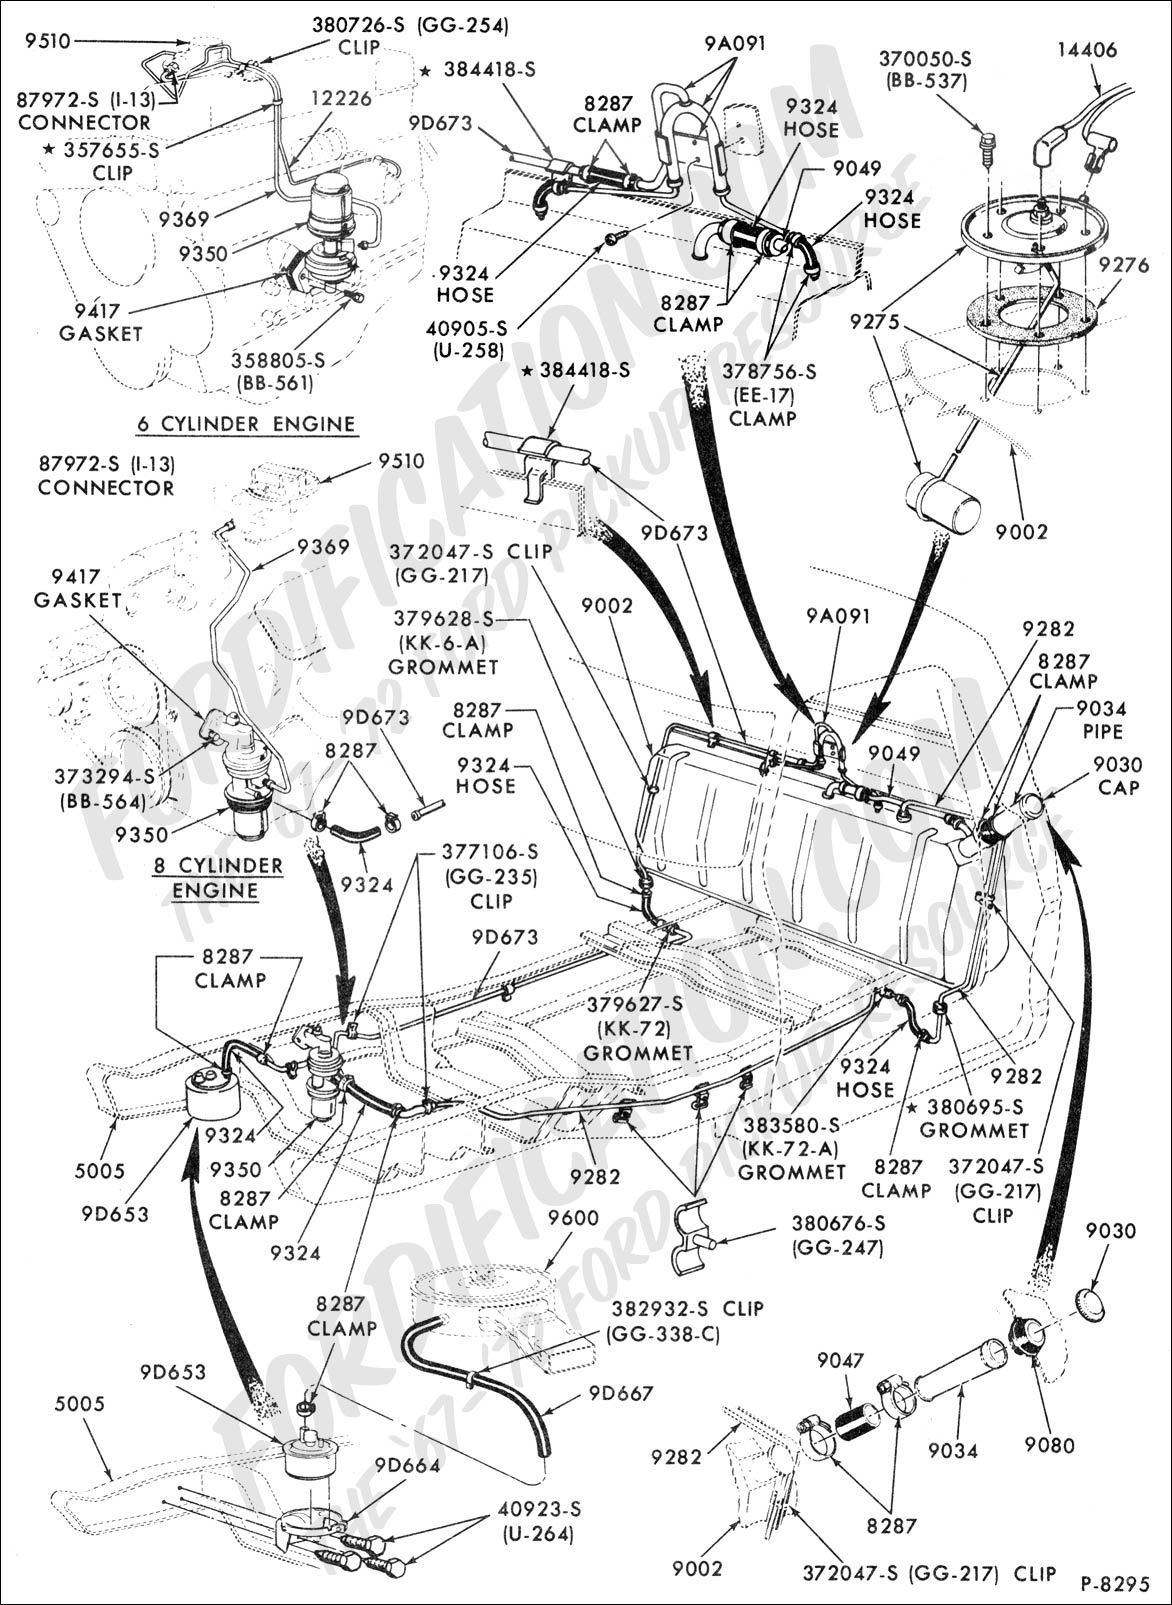 69 Mustang Fuel Tank Wiring Diagram - Wiring Diagrams Load